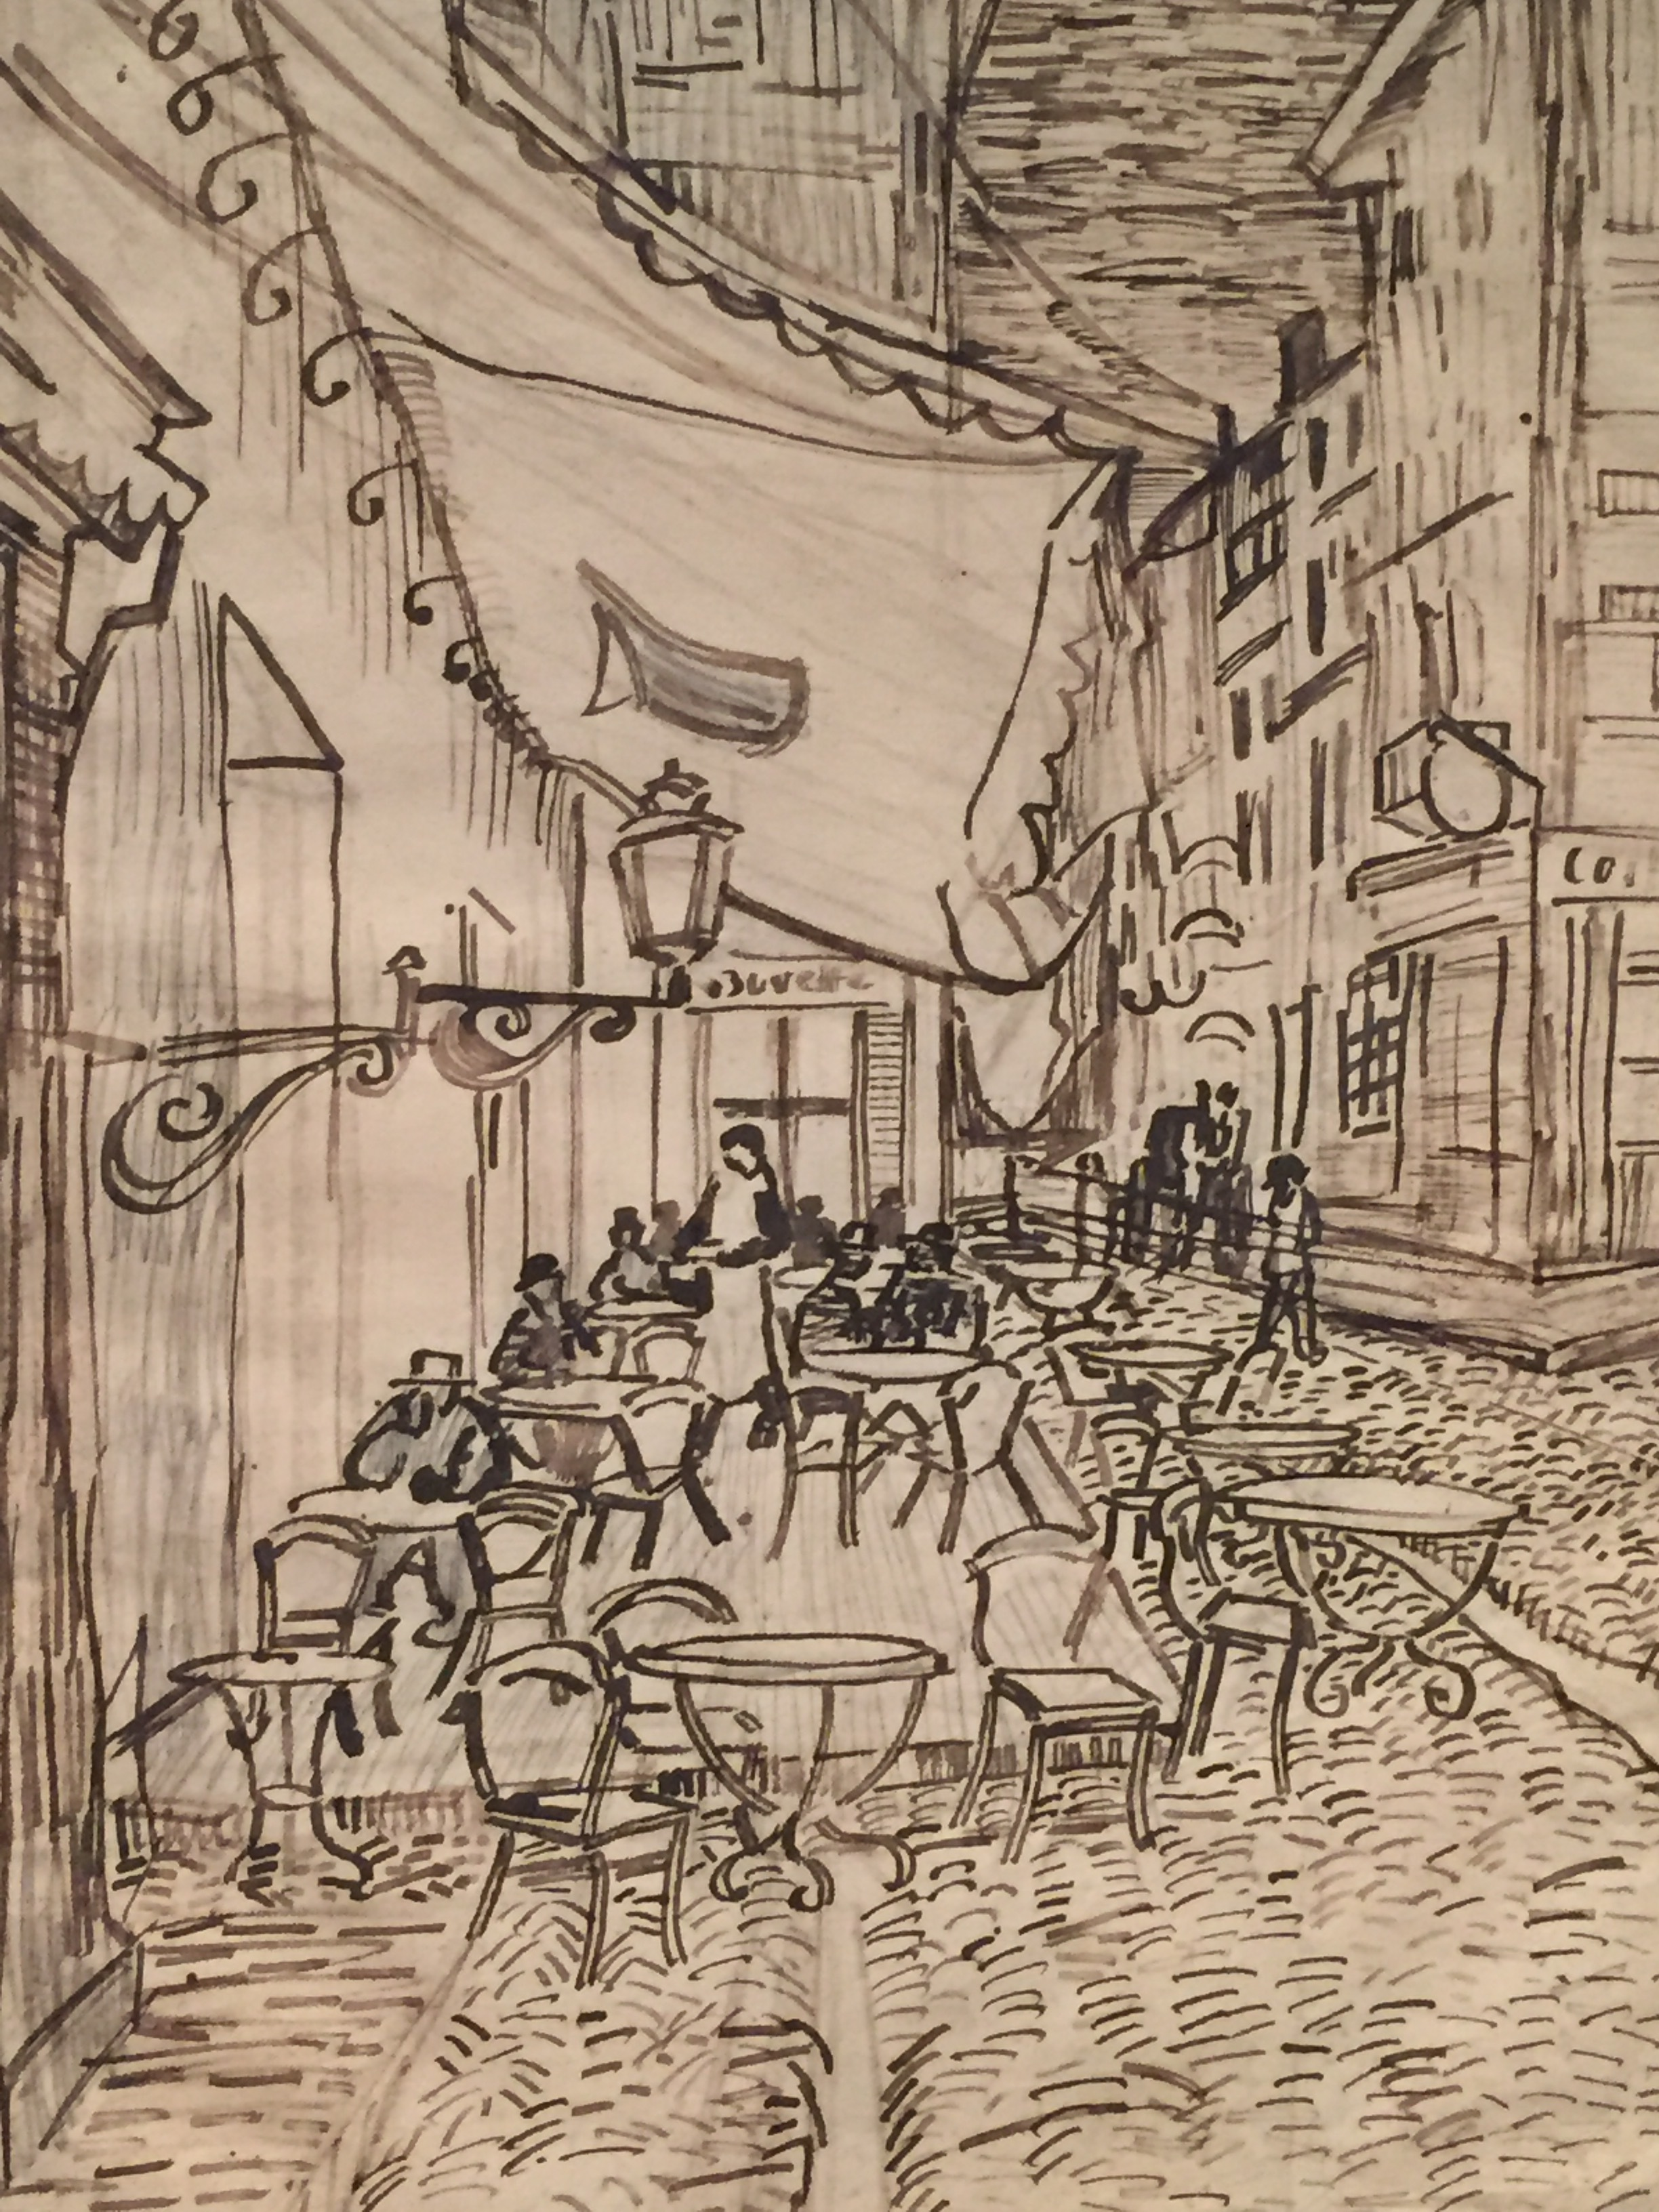 van gogh parisian cafe sketch houston.JPG